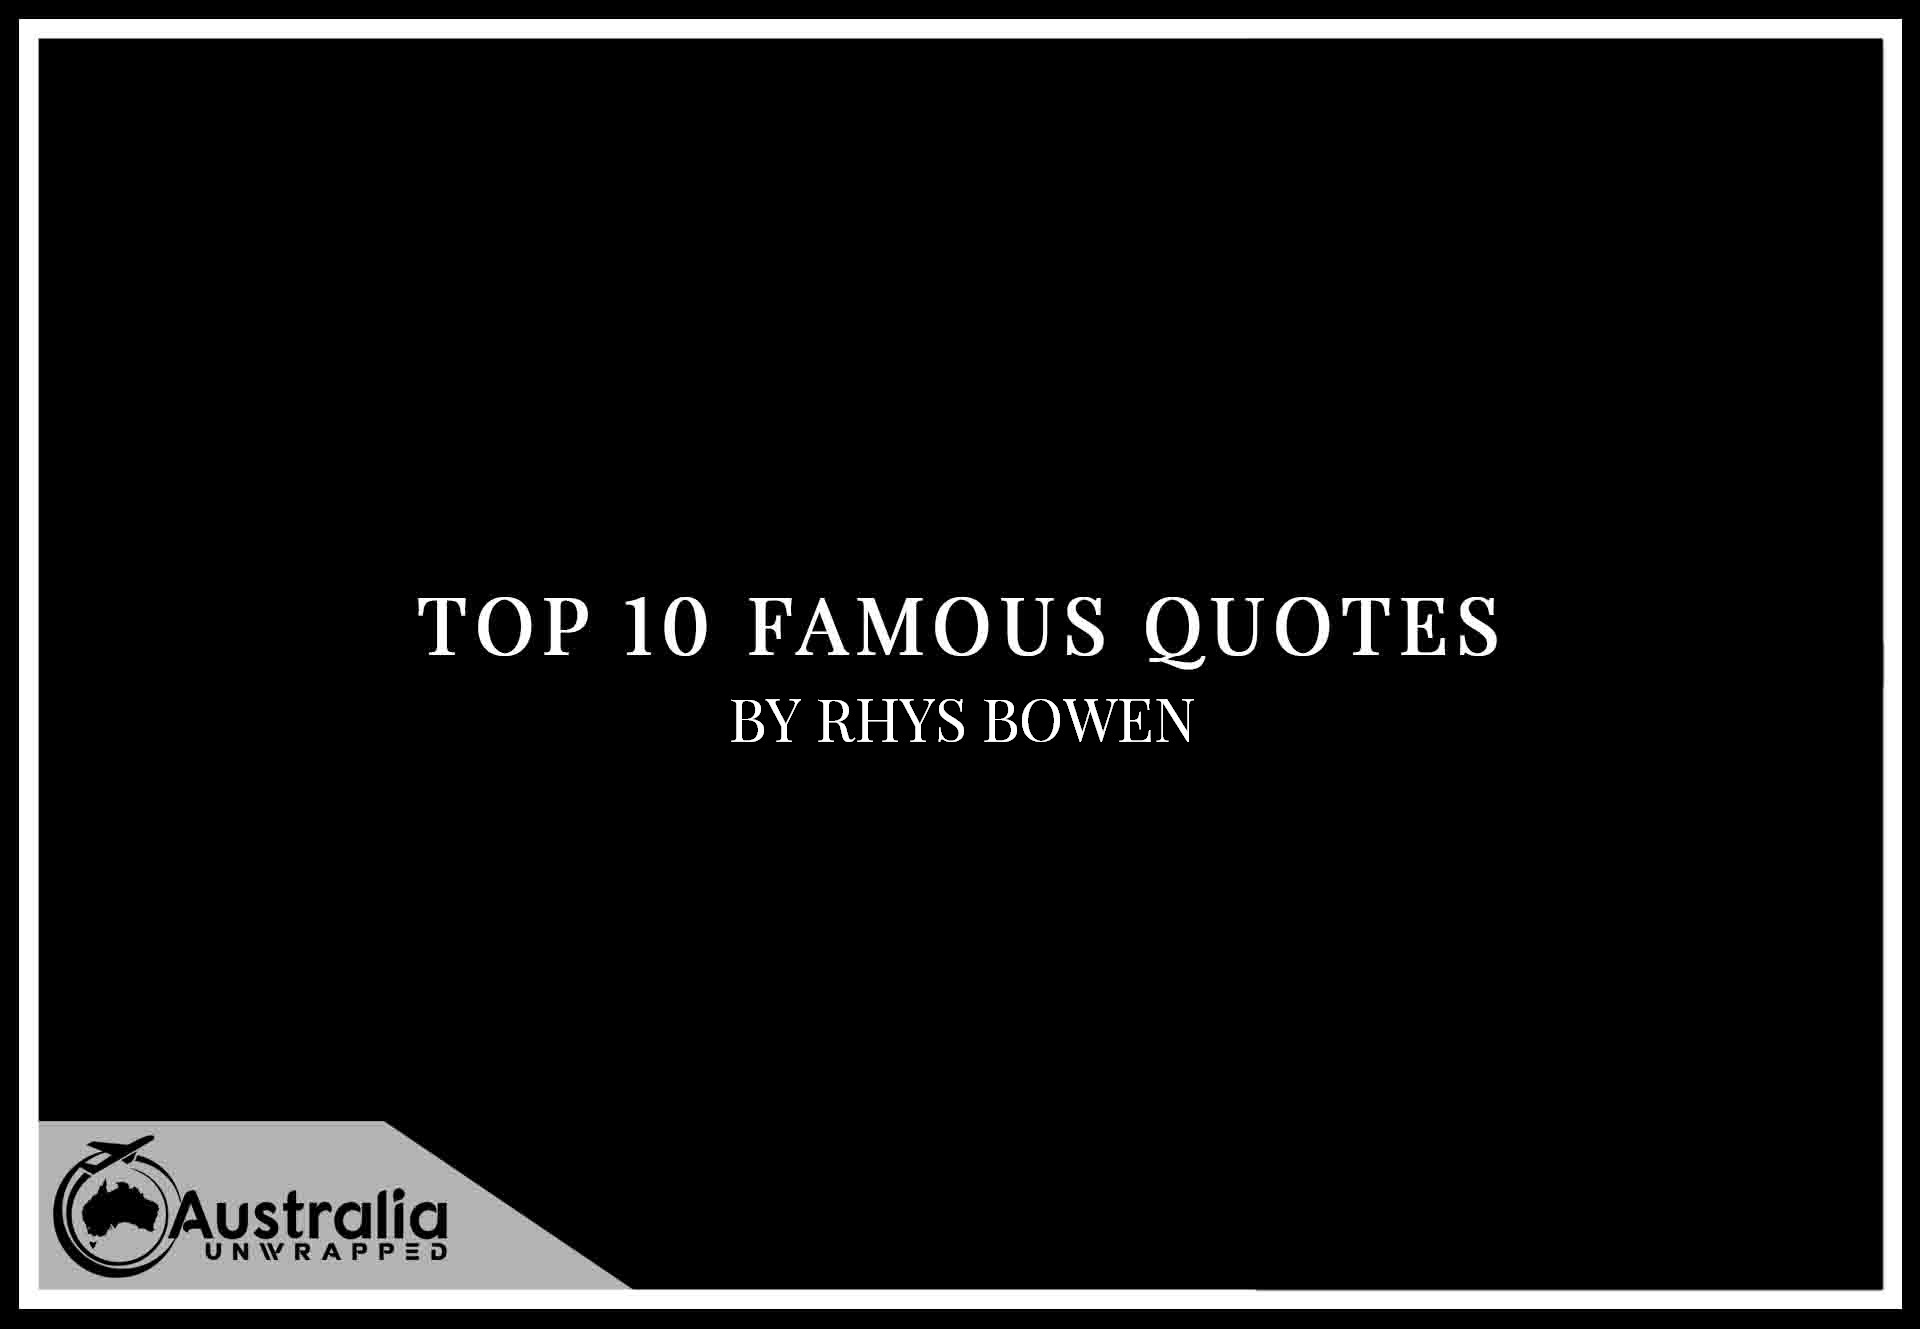 Top 10 Famous Quotes by Author Rhys Bowen